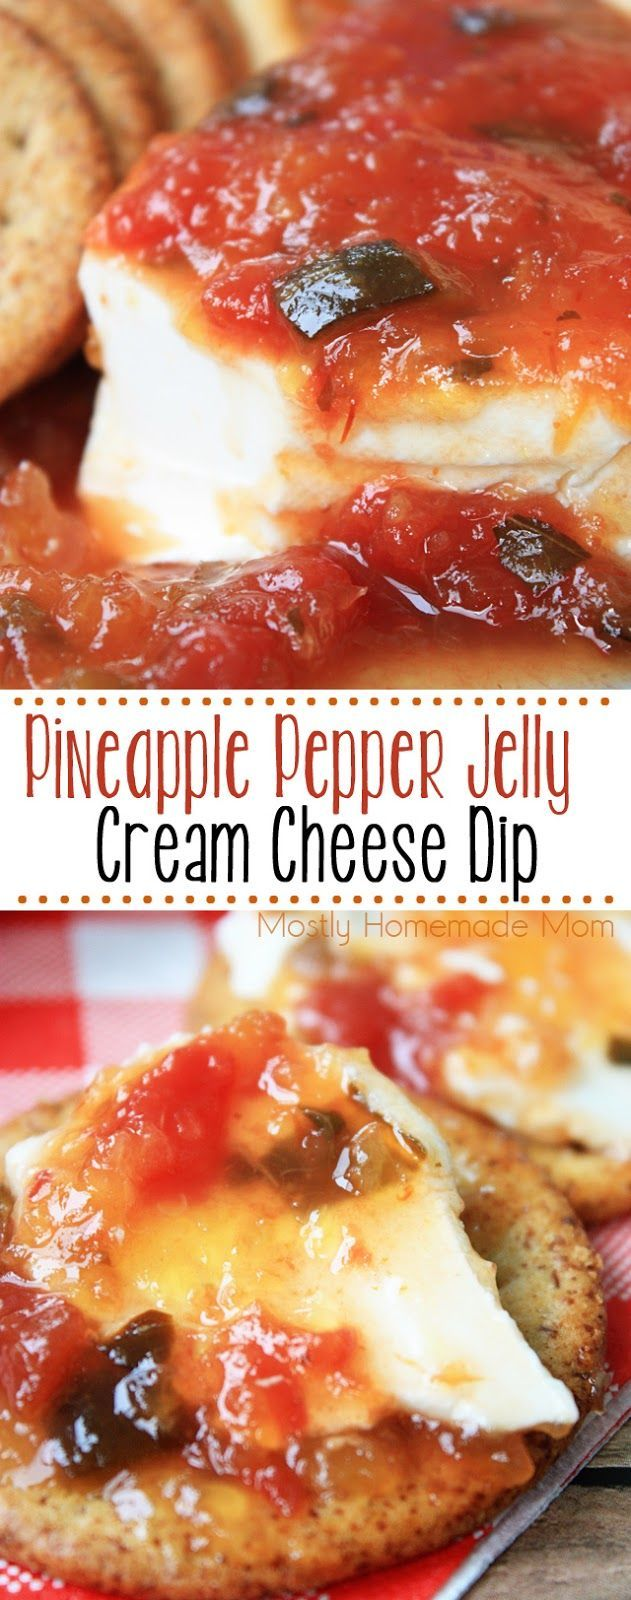 Pineapple Pepper Jelly Cream Cheese Dip - Pineapple preserves and salsa over a block of cream cheese and some great crackers. Instant summer party food! AD